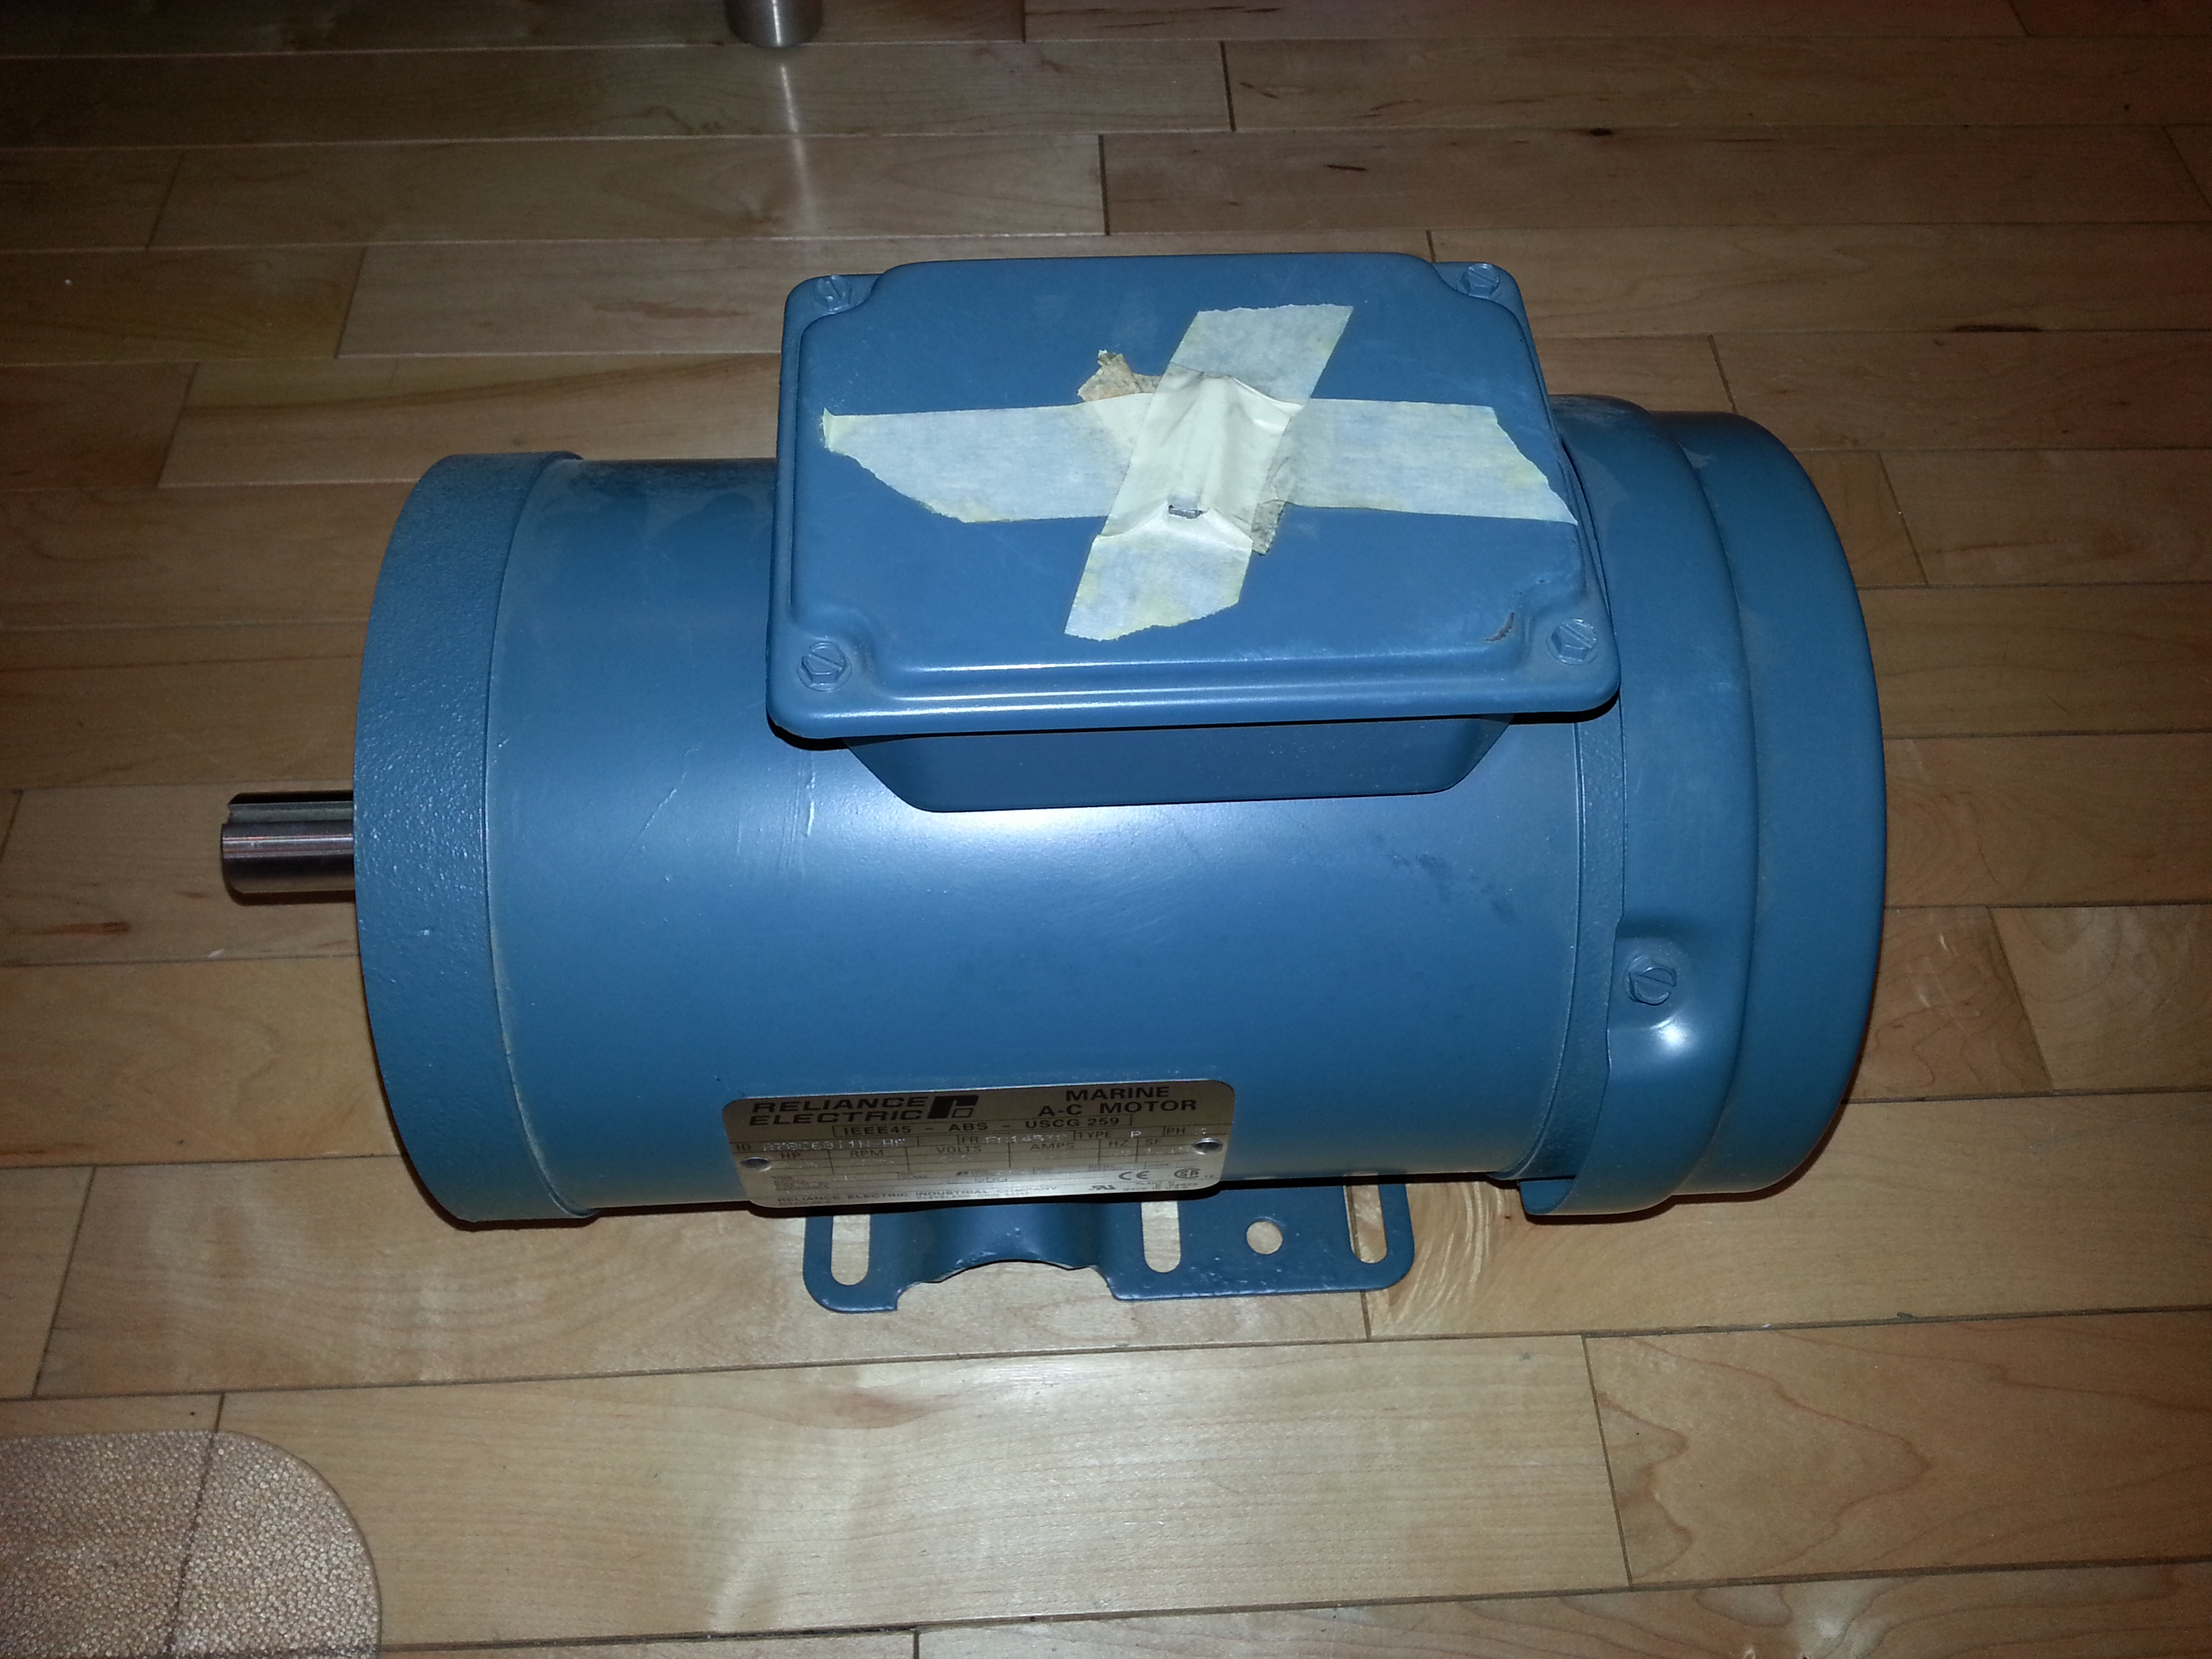 Reliance Baldor 3 Phase 1 5 Hp 460 Volt Electric Motor